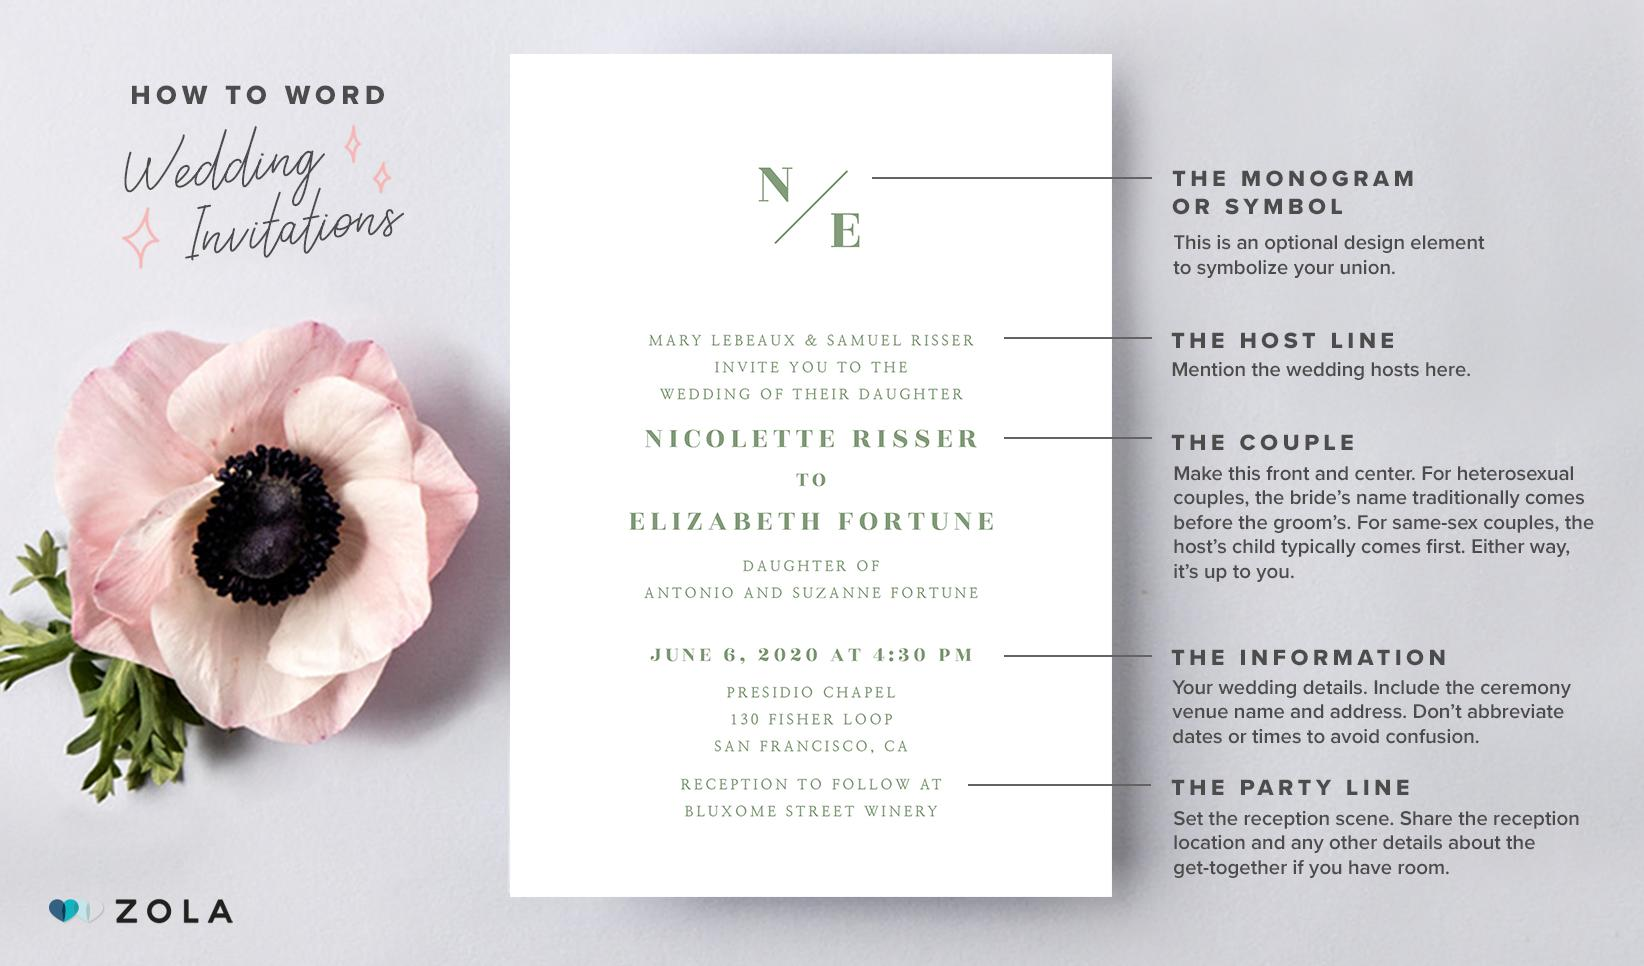 Wording For Invitations Wedding: How To Word Wedding Invitations